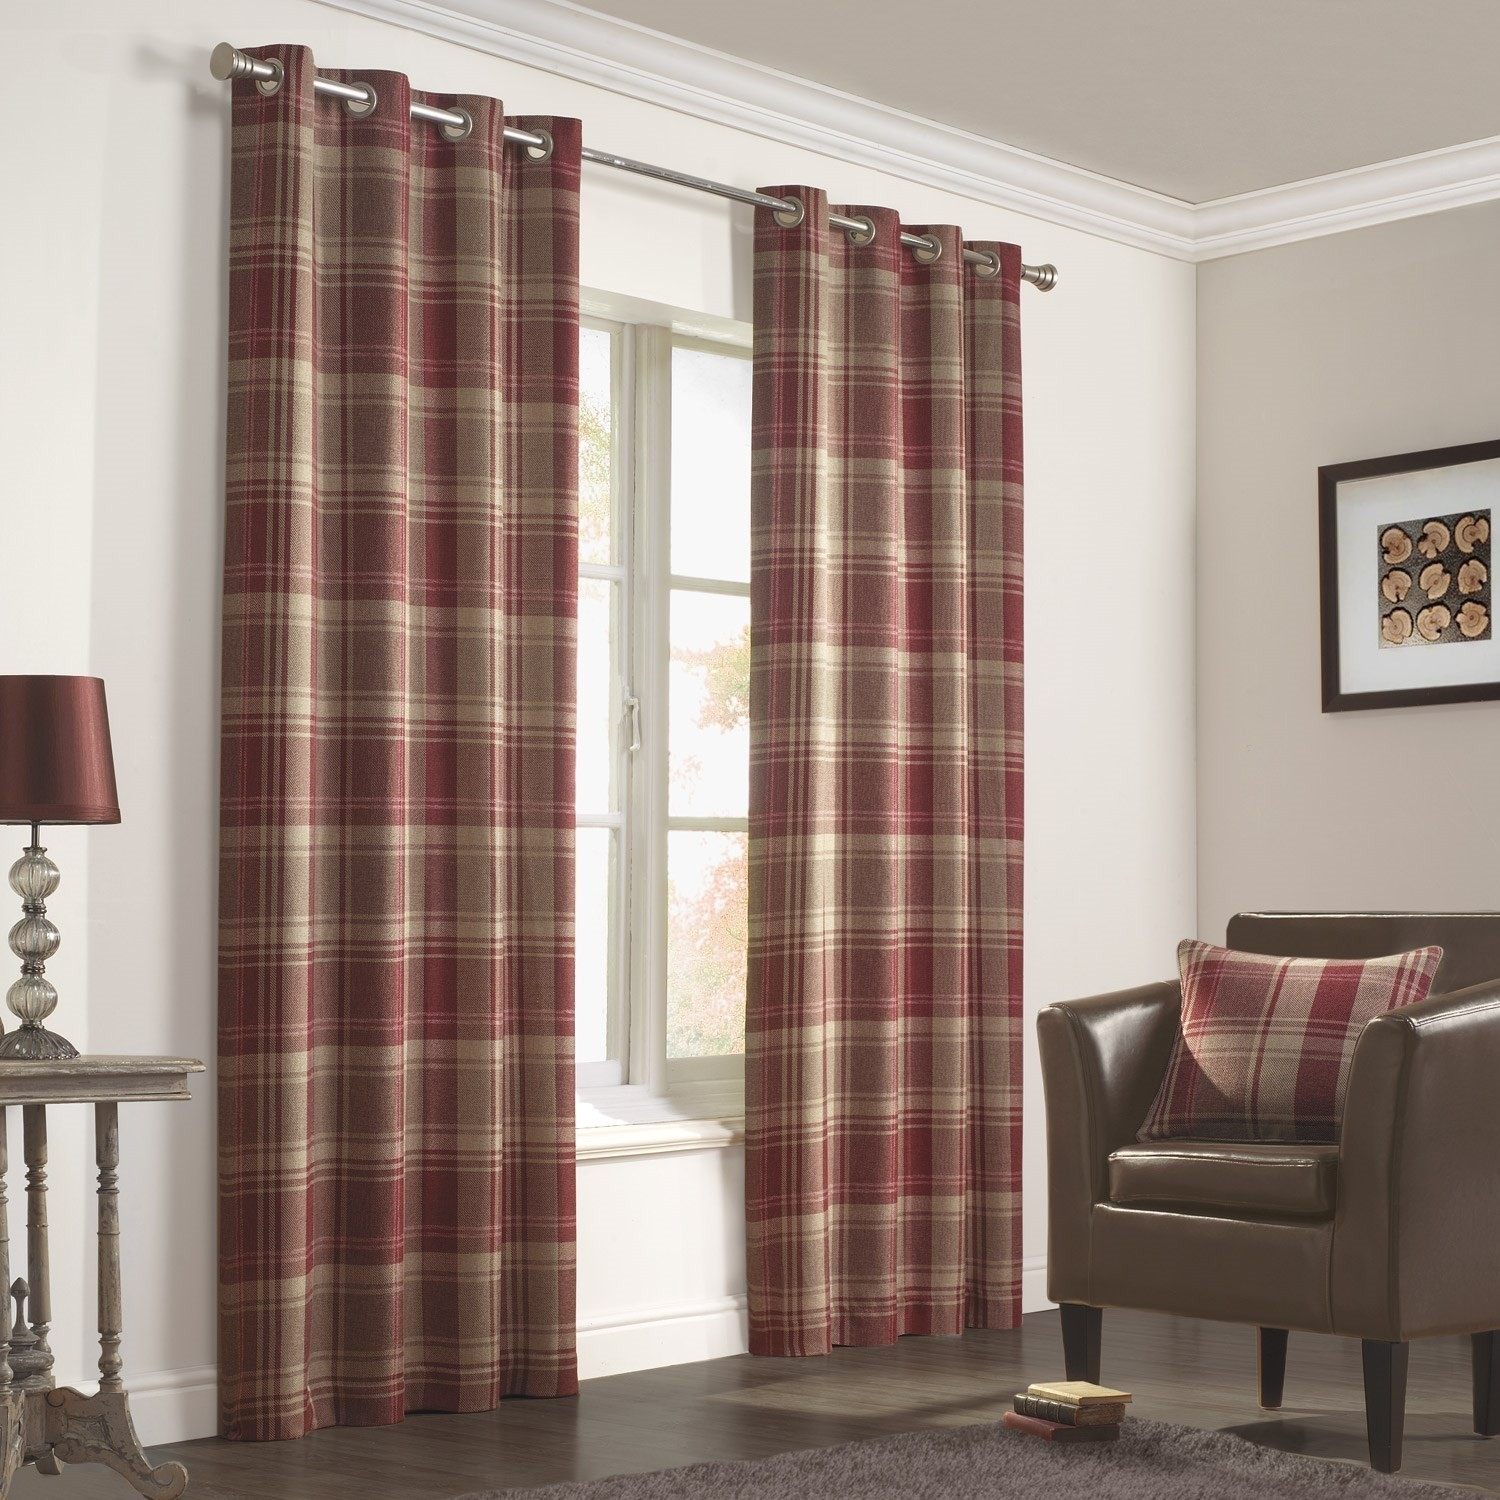 Inverness Rust Luxury Lined Woven Eyelet Curtains Pair With Regard To Brown Eyelet Curtains (Image 11 of 25)